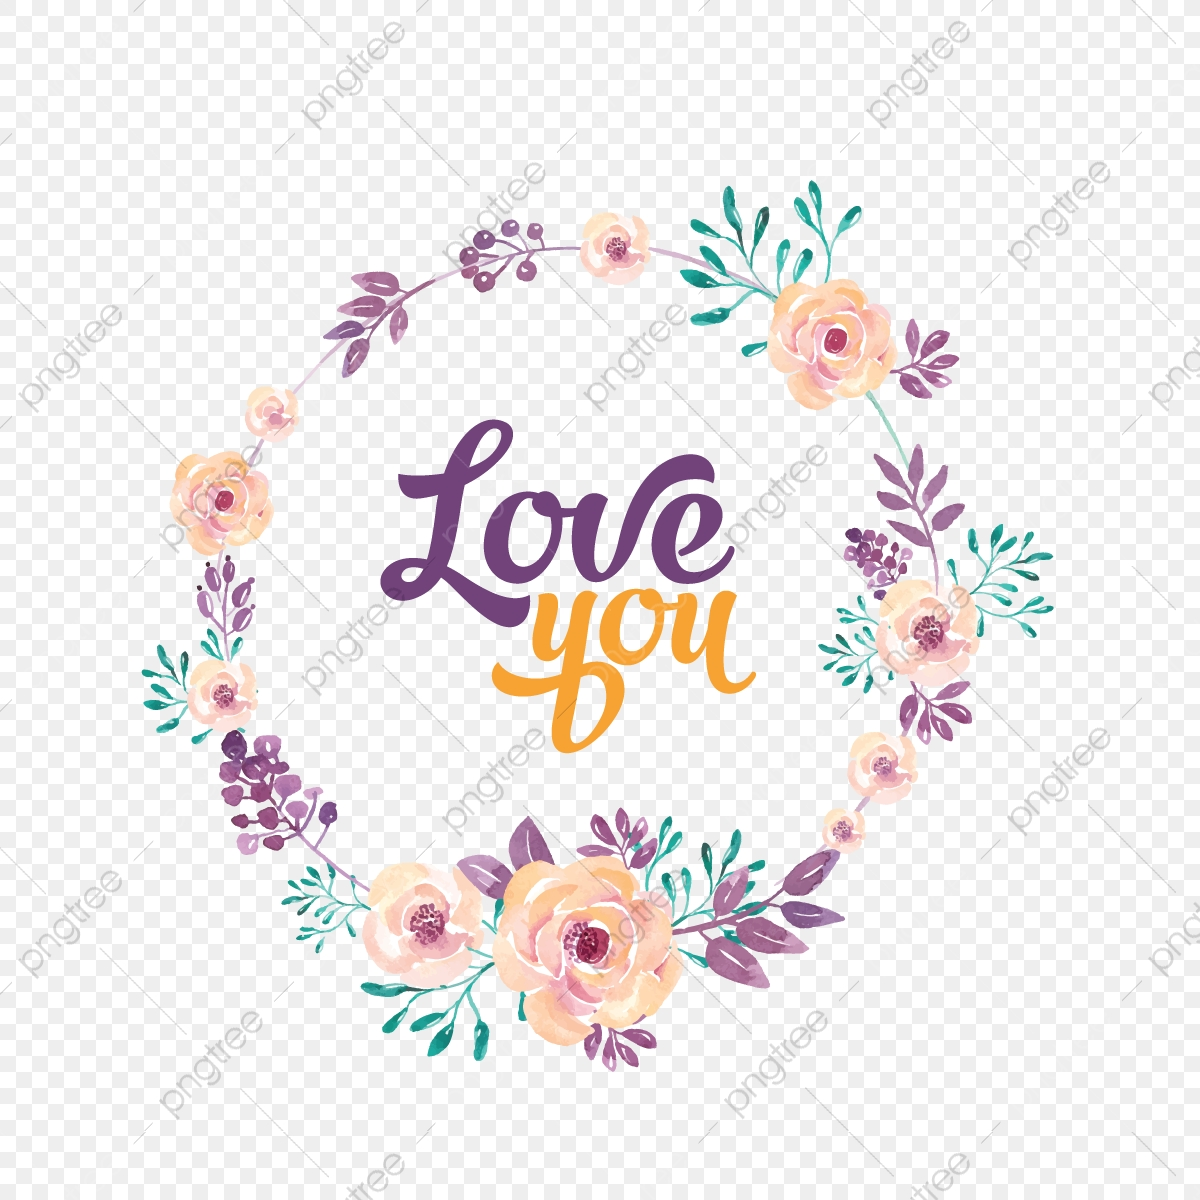 Romantic Wreath With Love You Quotes Romantic Rose Rose Wreath Flowers Wreath Png And Vector With Transparent Background For Free Download